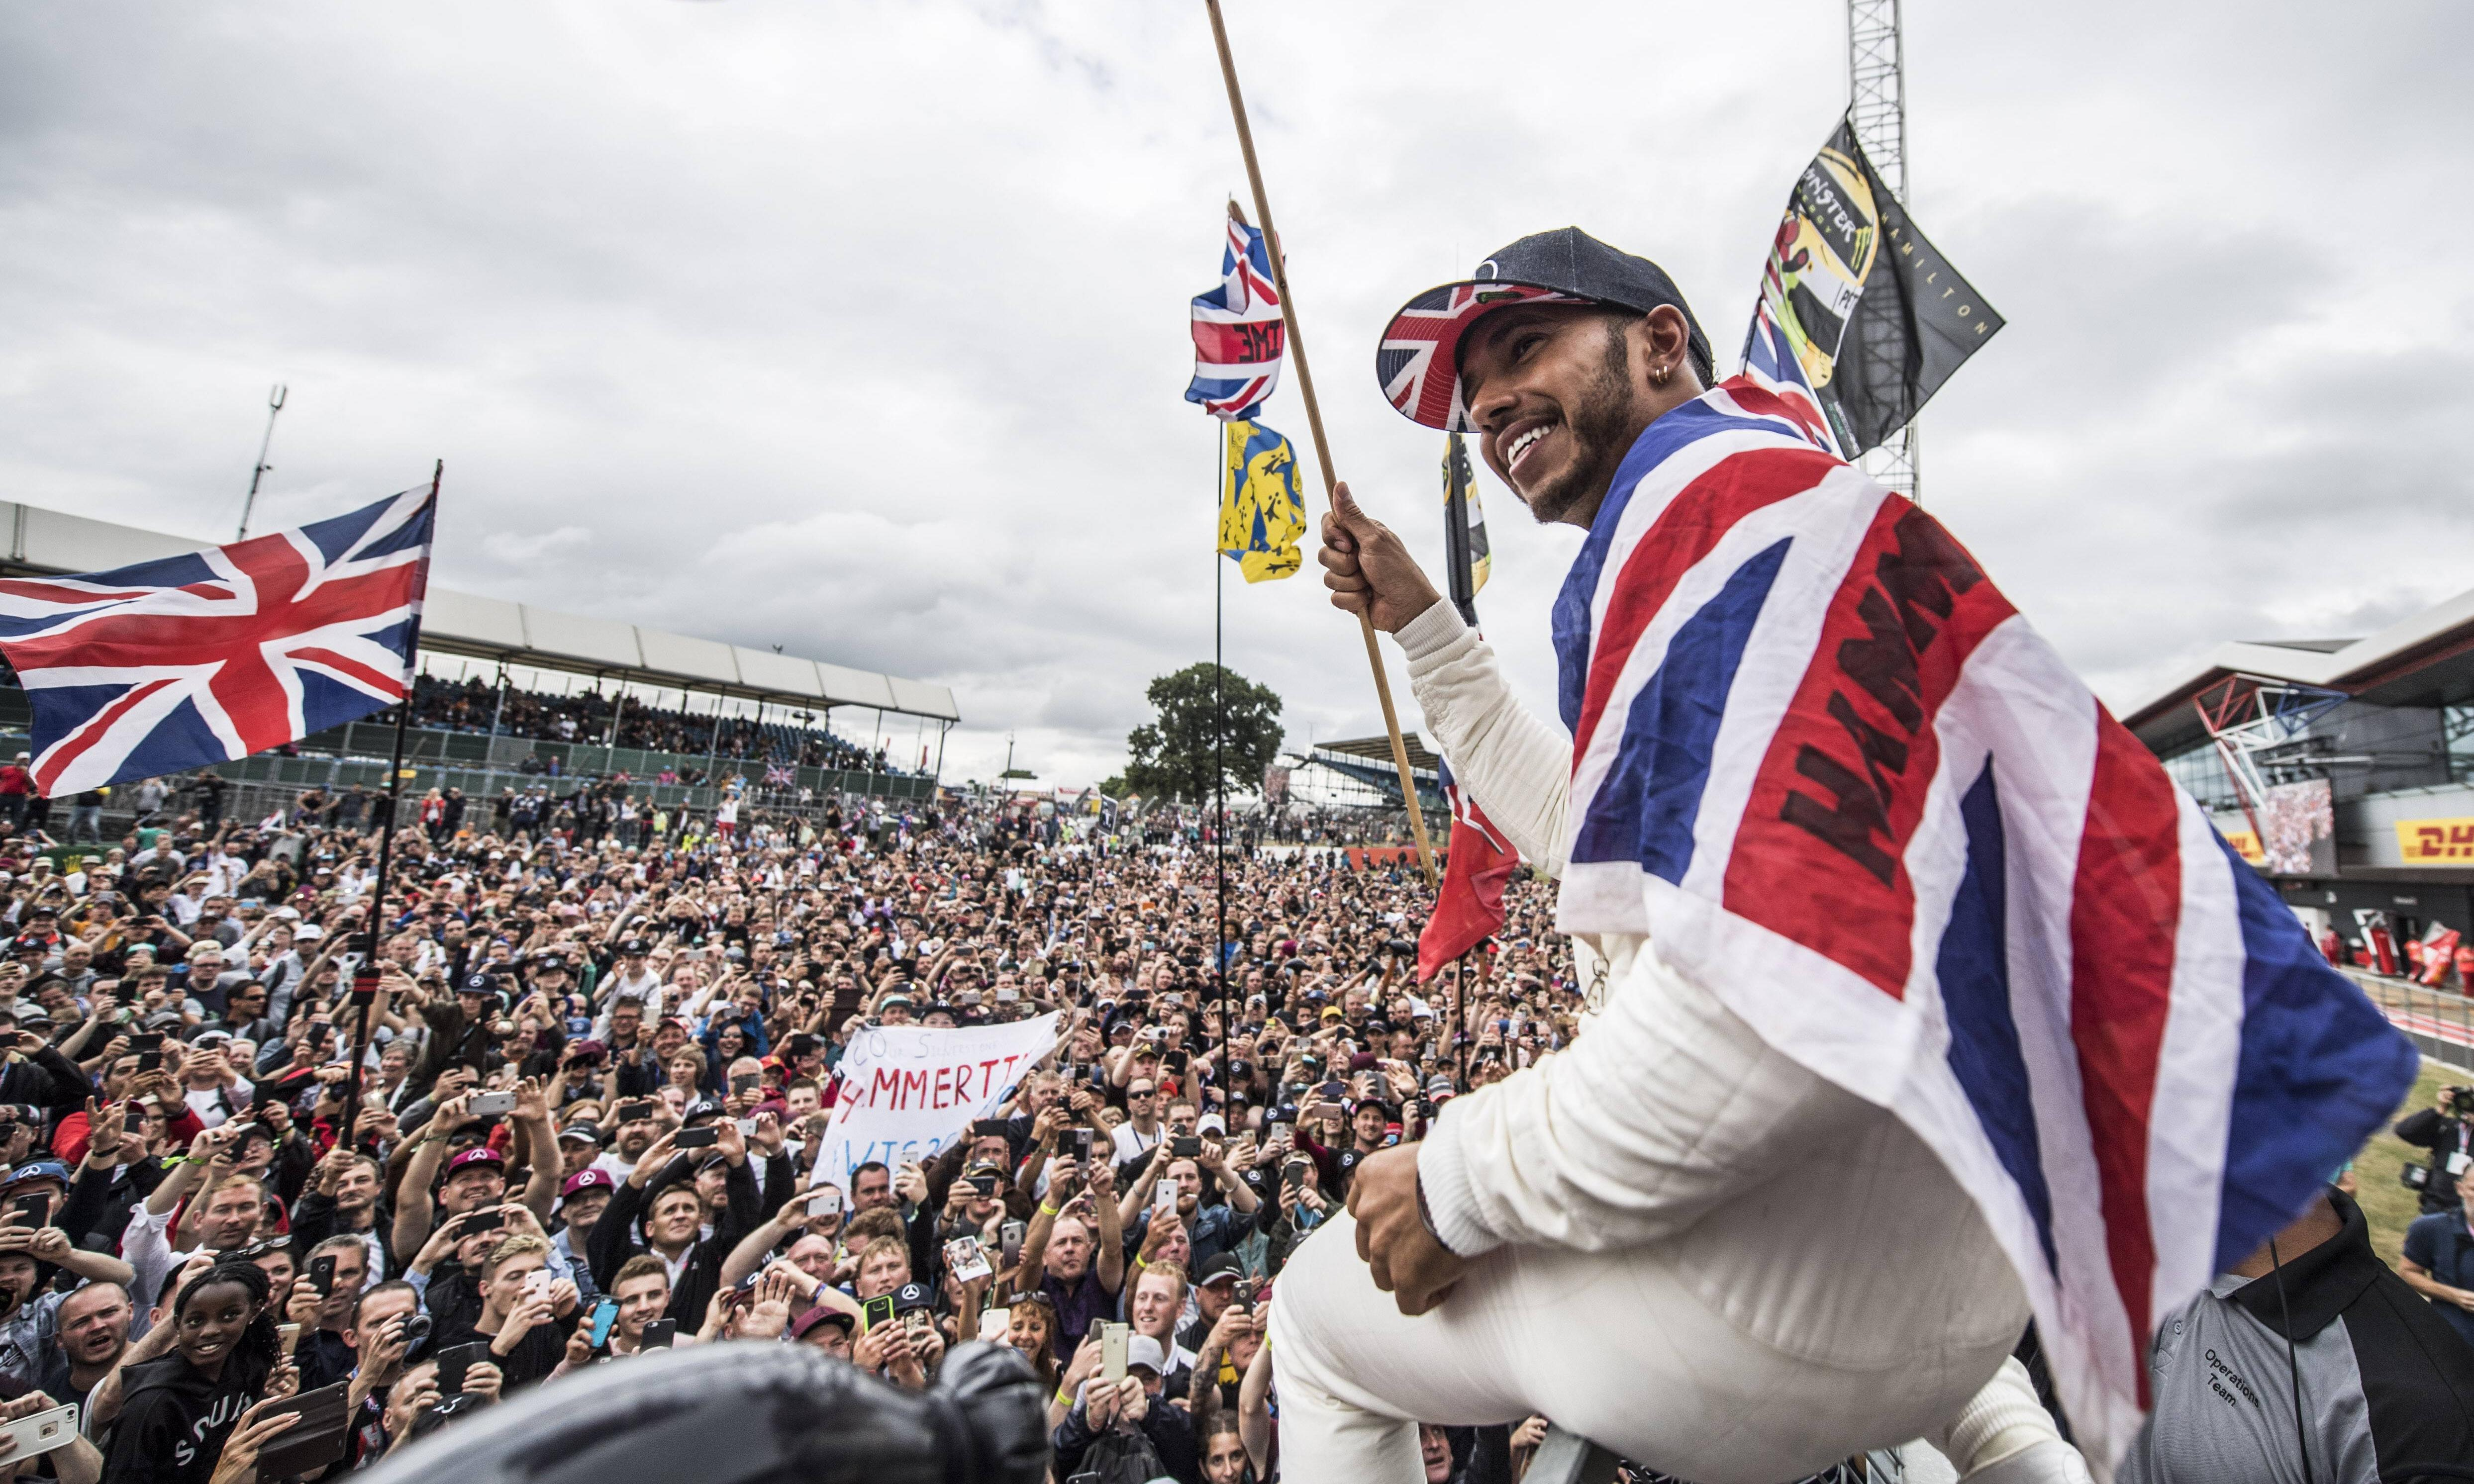 Lewis Hamilton focused on title race amid questions over his future in F1